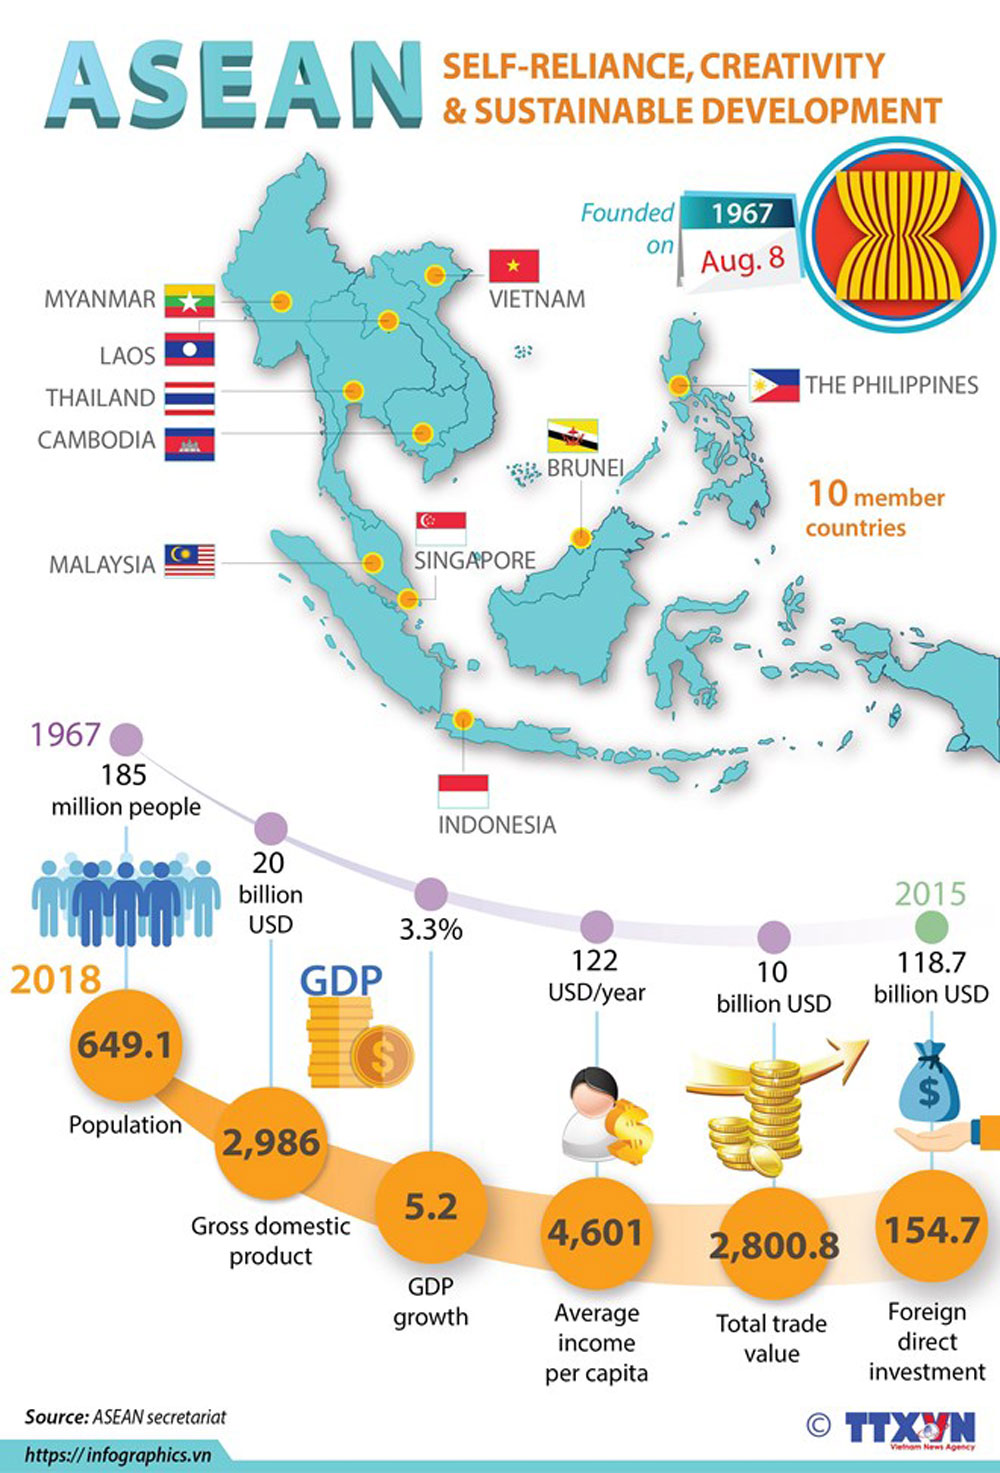 ASEAN, Self-reliance, creativity and sustainable development, GDP growth, total trade value